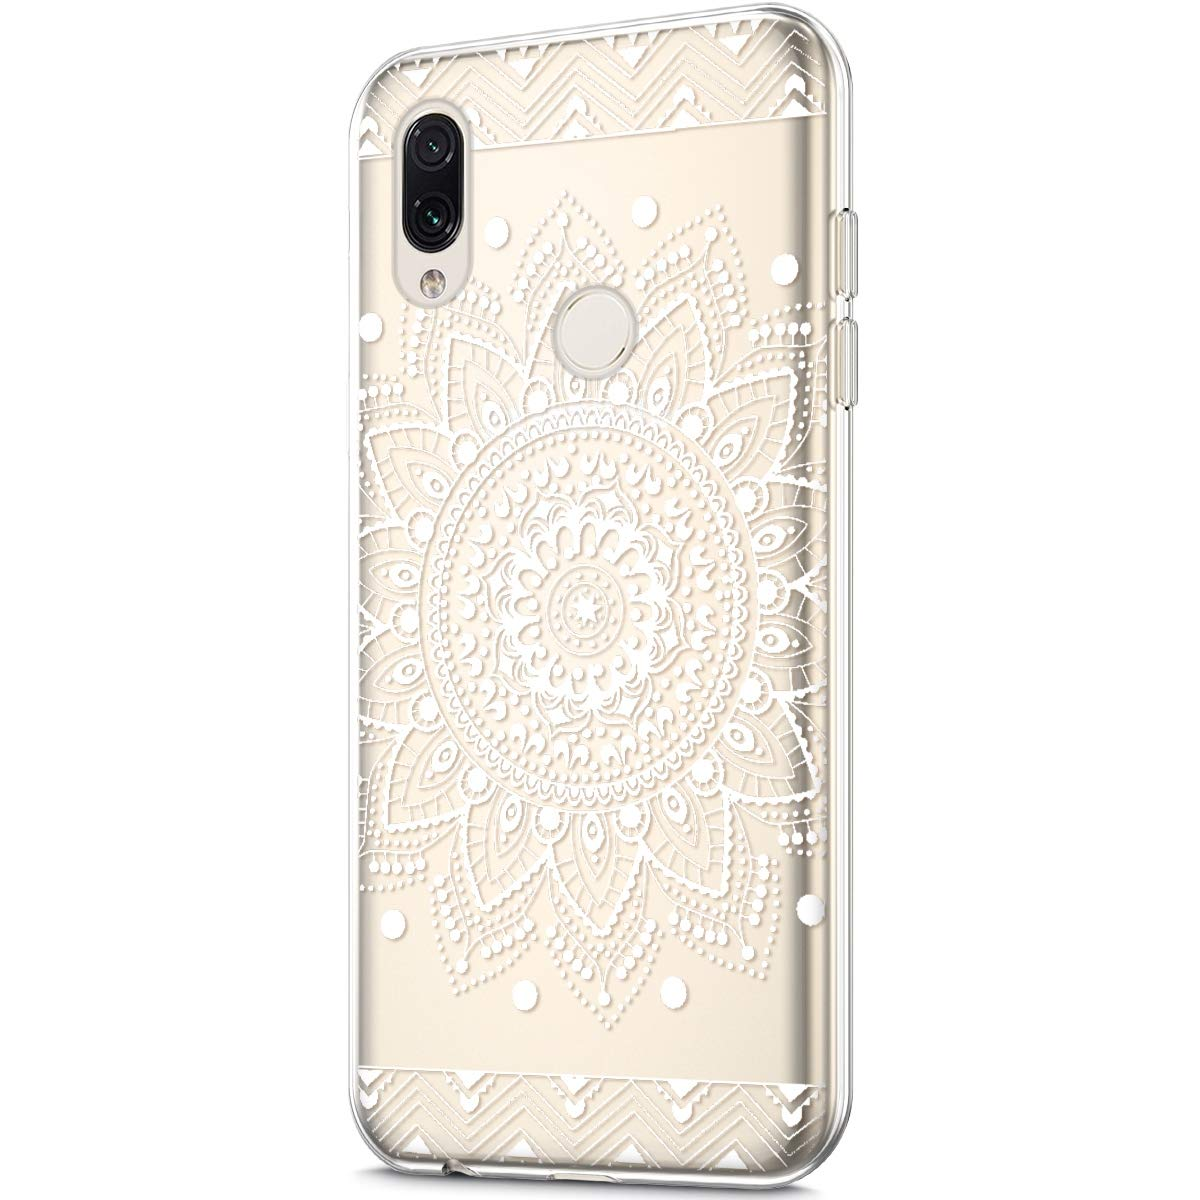 Coque Compatible avec Xiaomi Redmi Note 7 /Étui KunyFond Dur TPU Silicone Clear Fleurs Motif Protection Choc Scratch Slim Cristal Clair Transparent Hybrid Souple Bumper Skin Couverture,Fleur Bleue